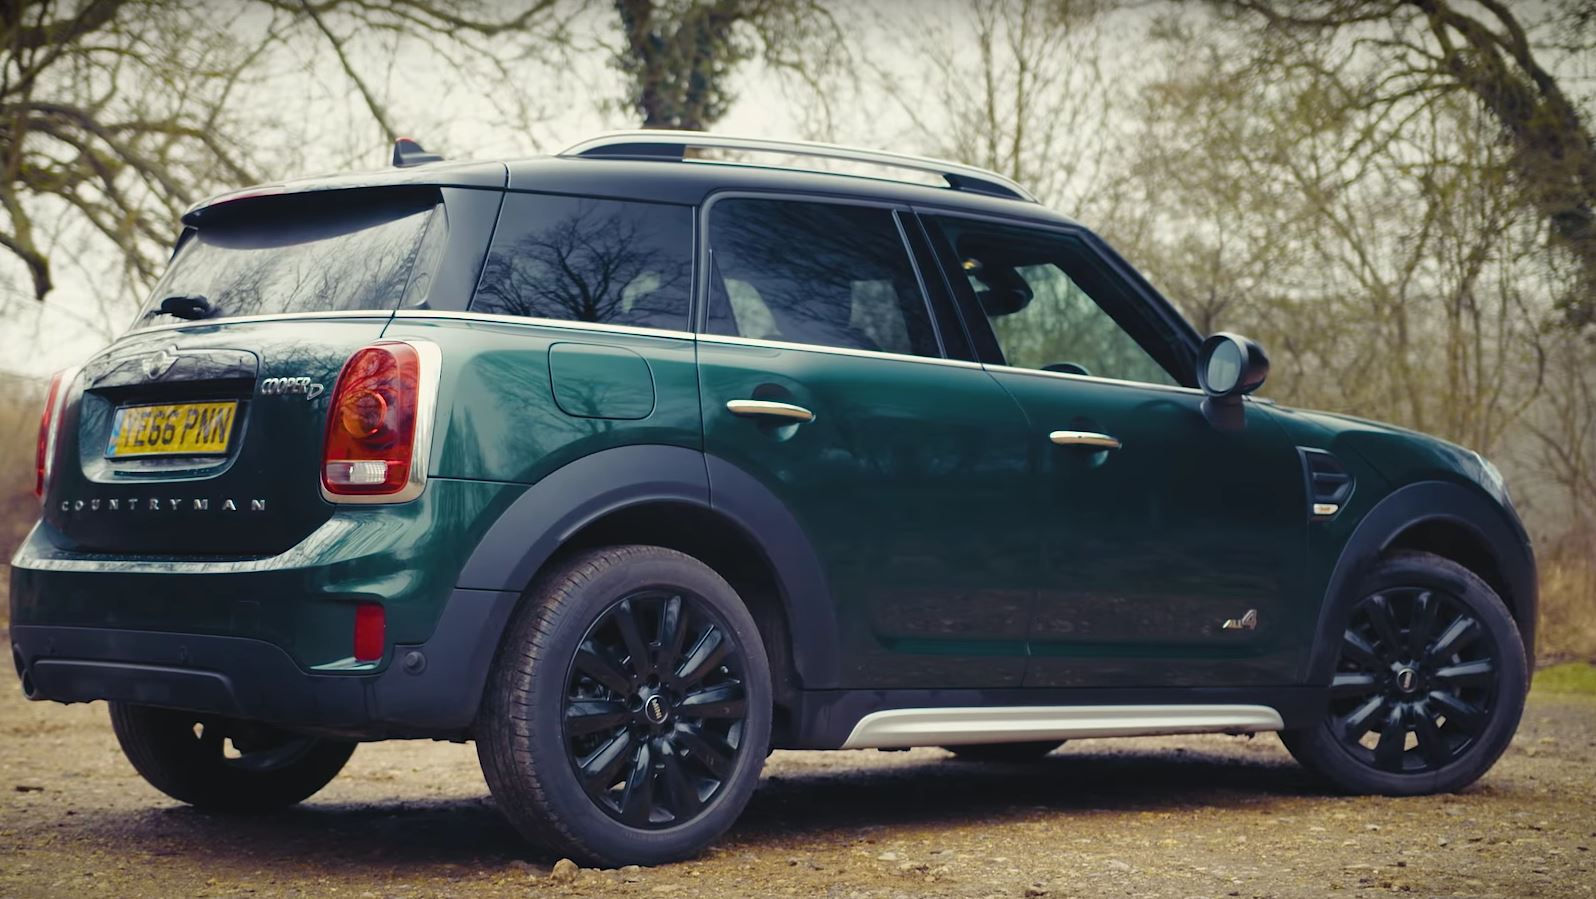 2017 mini countryman finally gets uk review from carbuyer autoevolution. Black Bedroom Furniture Sets. Home Design Ideas